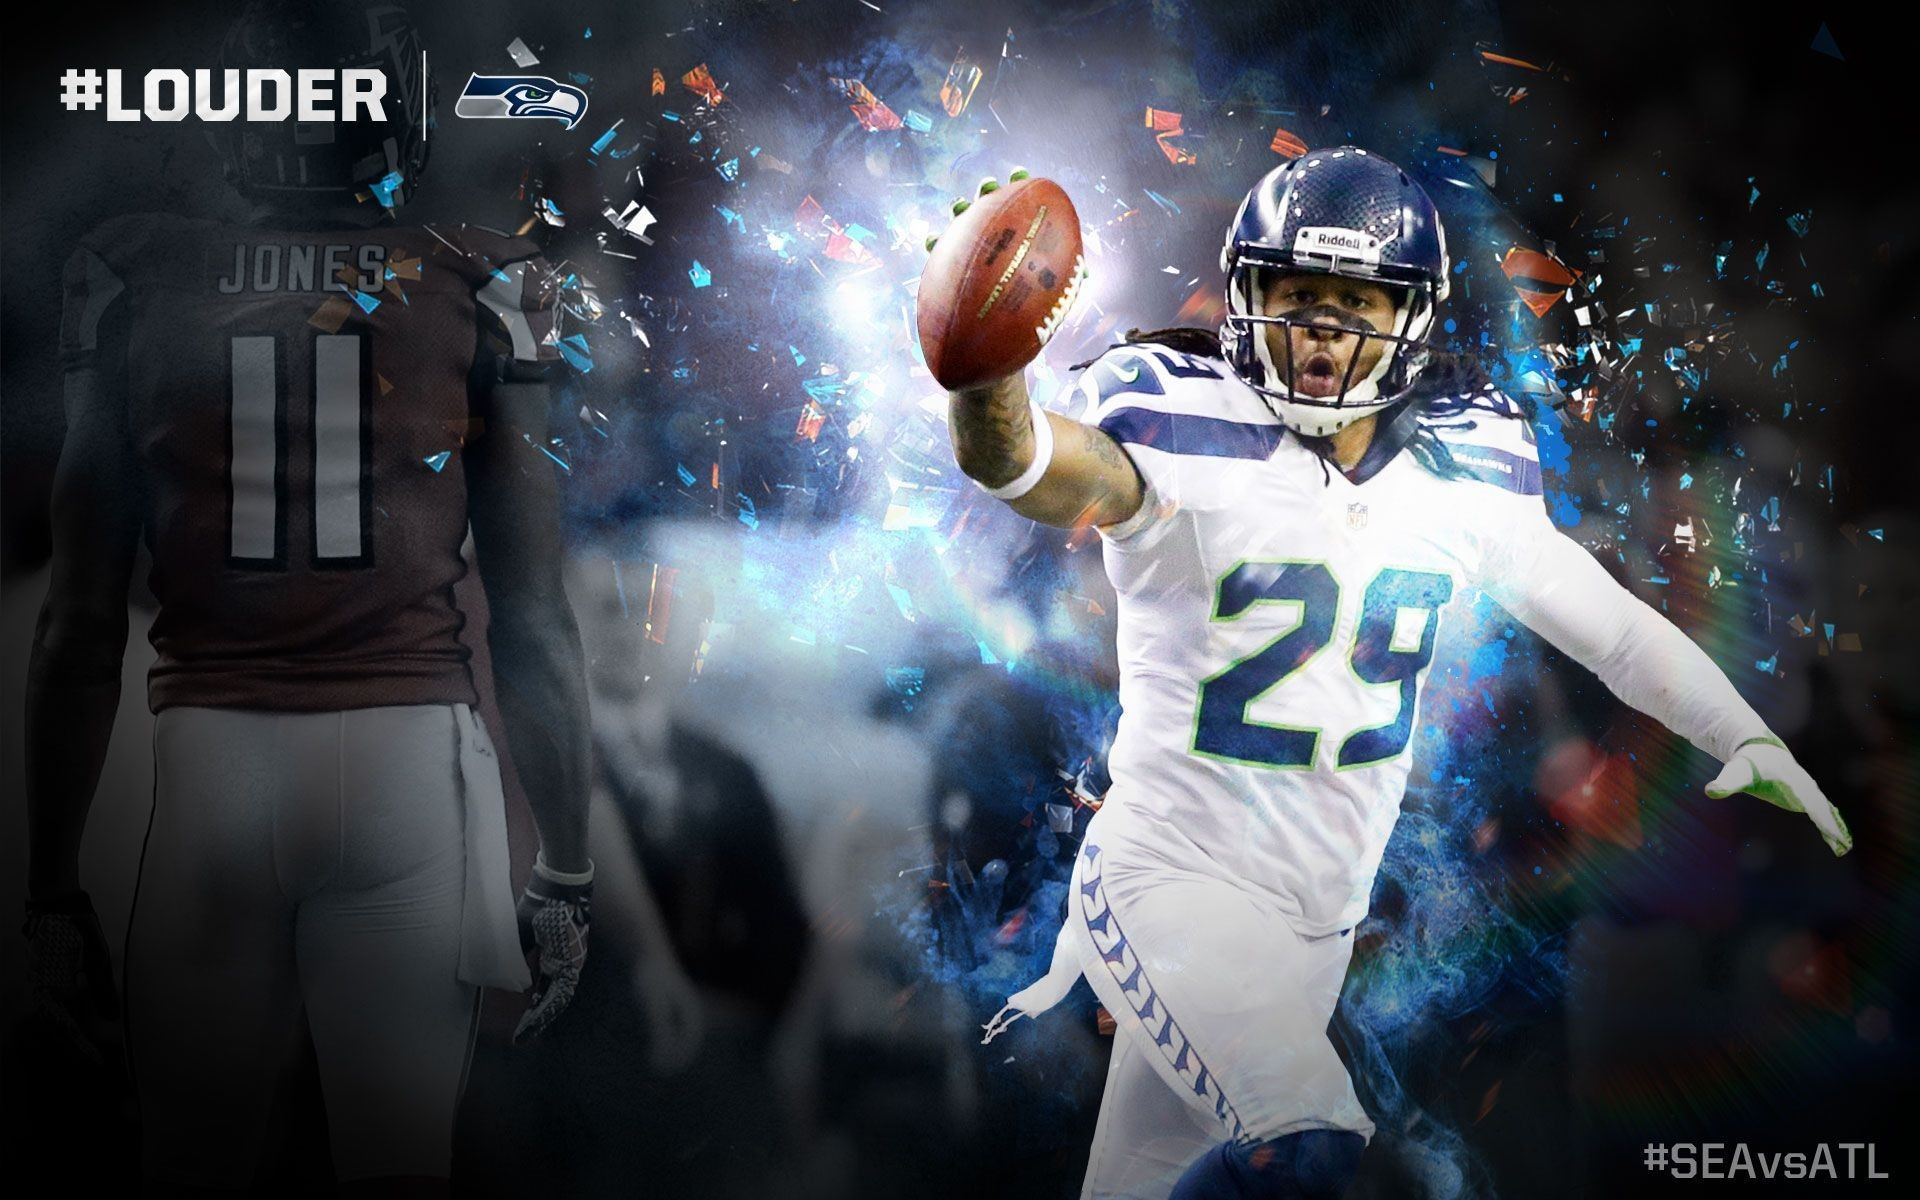 … seahawks wallpapers hd seahawks backgrounds 522fhh …